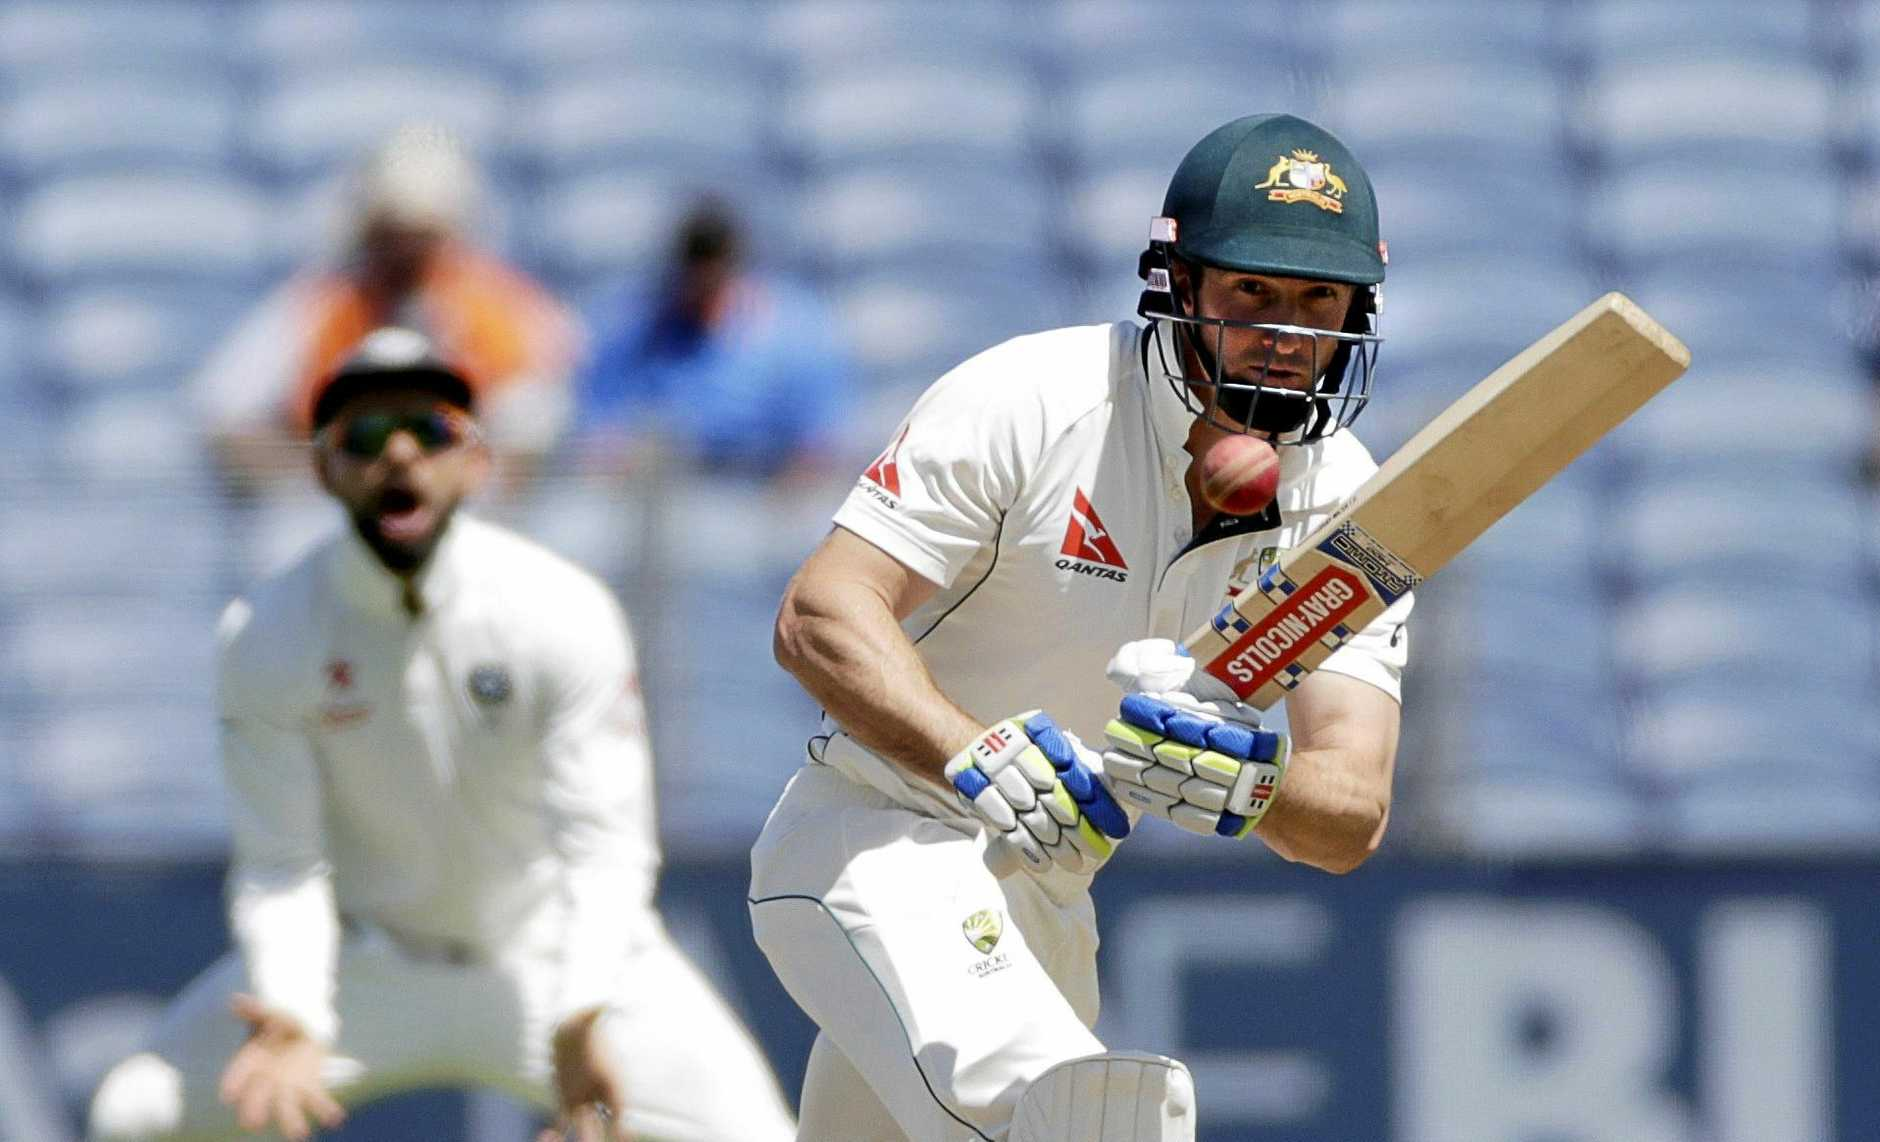 Australia's Shaun Marsh bats on the first day of the first cricket test match against India in Pune, India, Thursday, Feb. 23, 2017. (AP Photo/Rajanish Kakade)